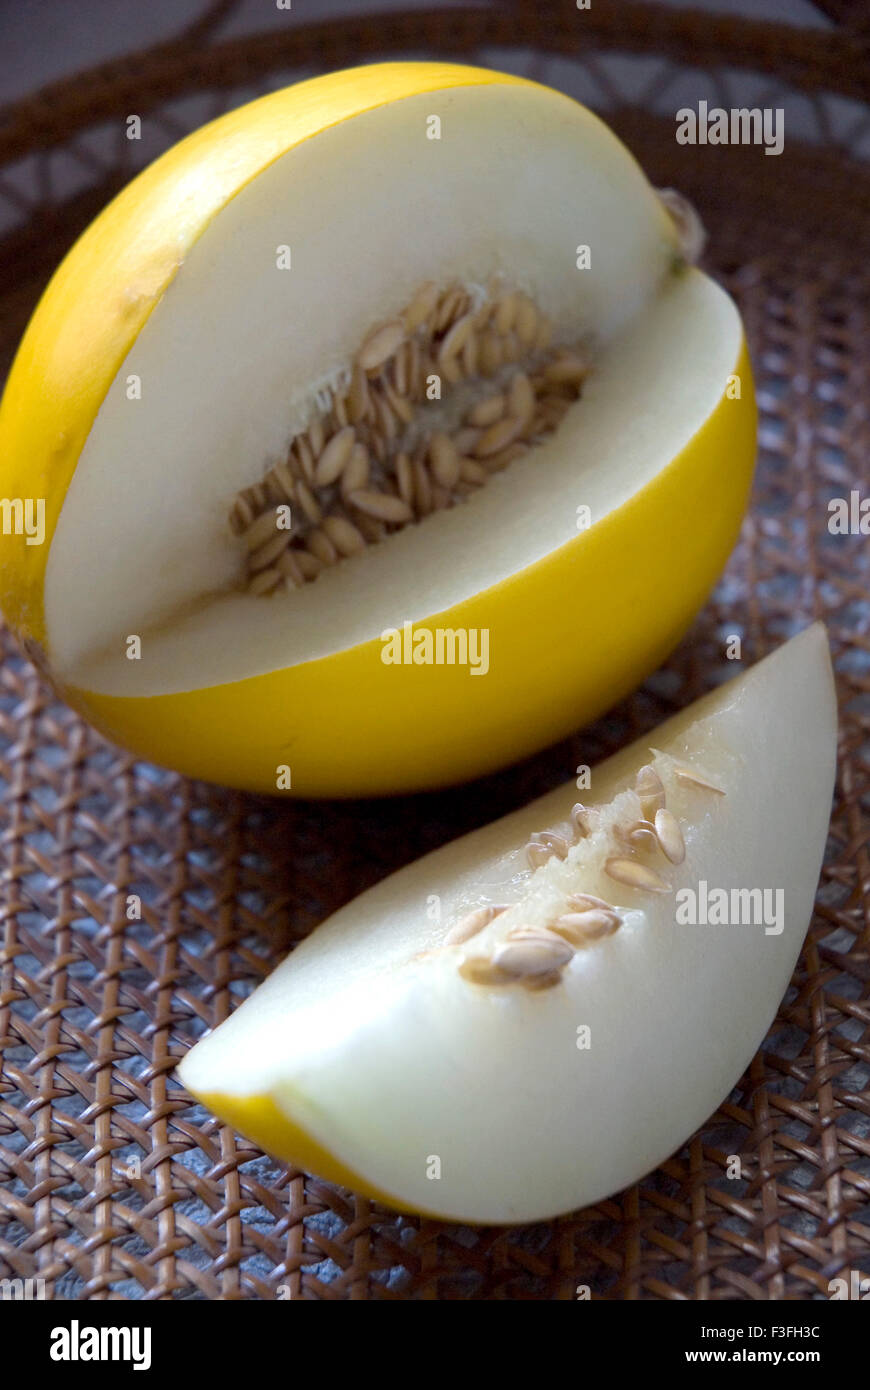 Casaba Melon High Resolution Stock Photography And Images Alamy